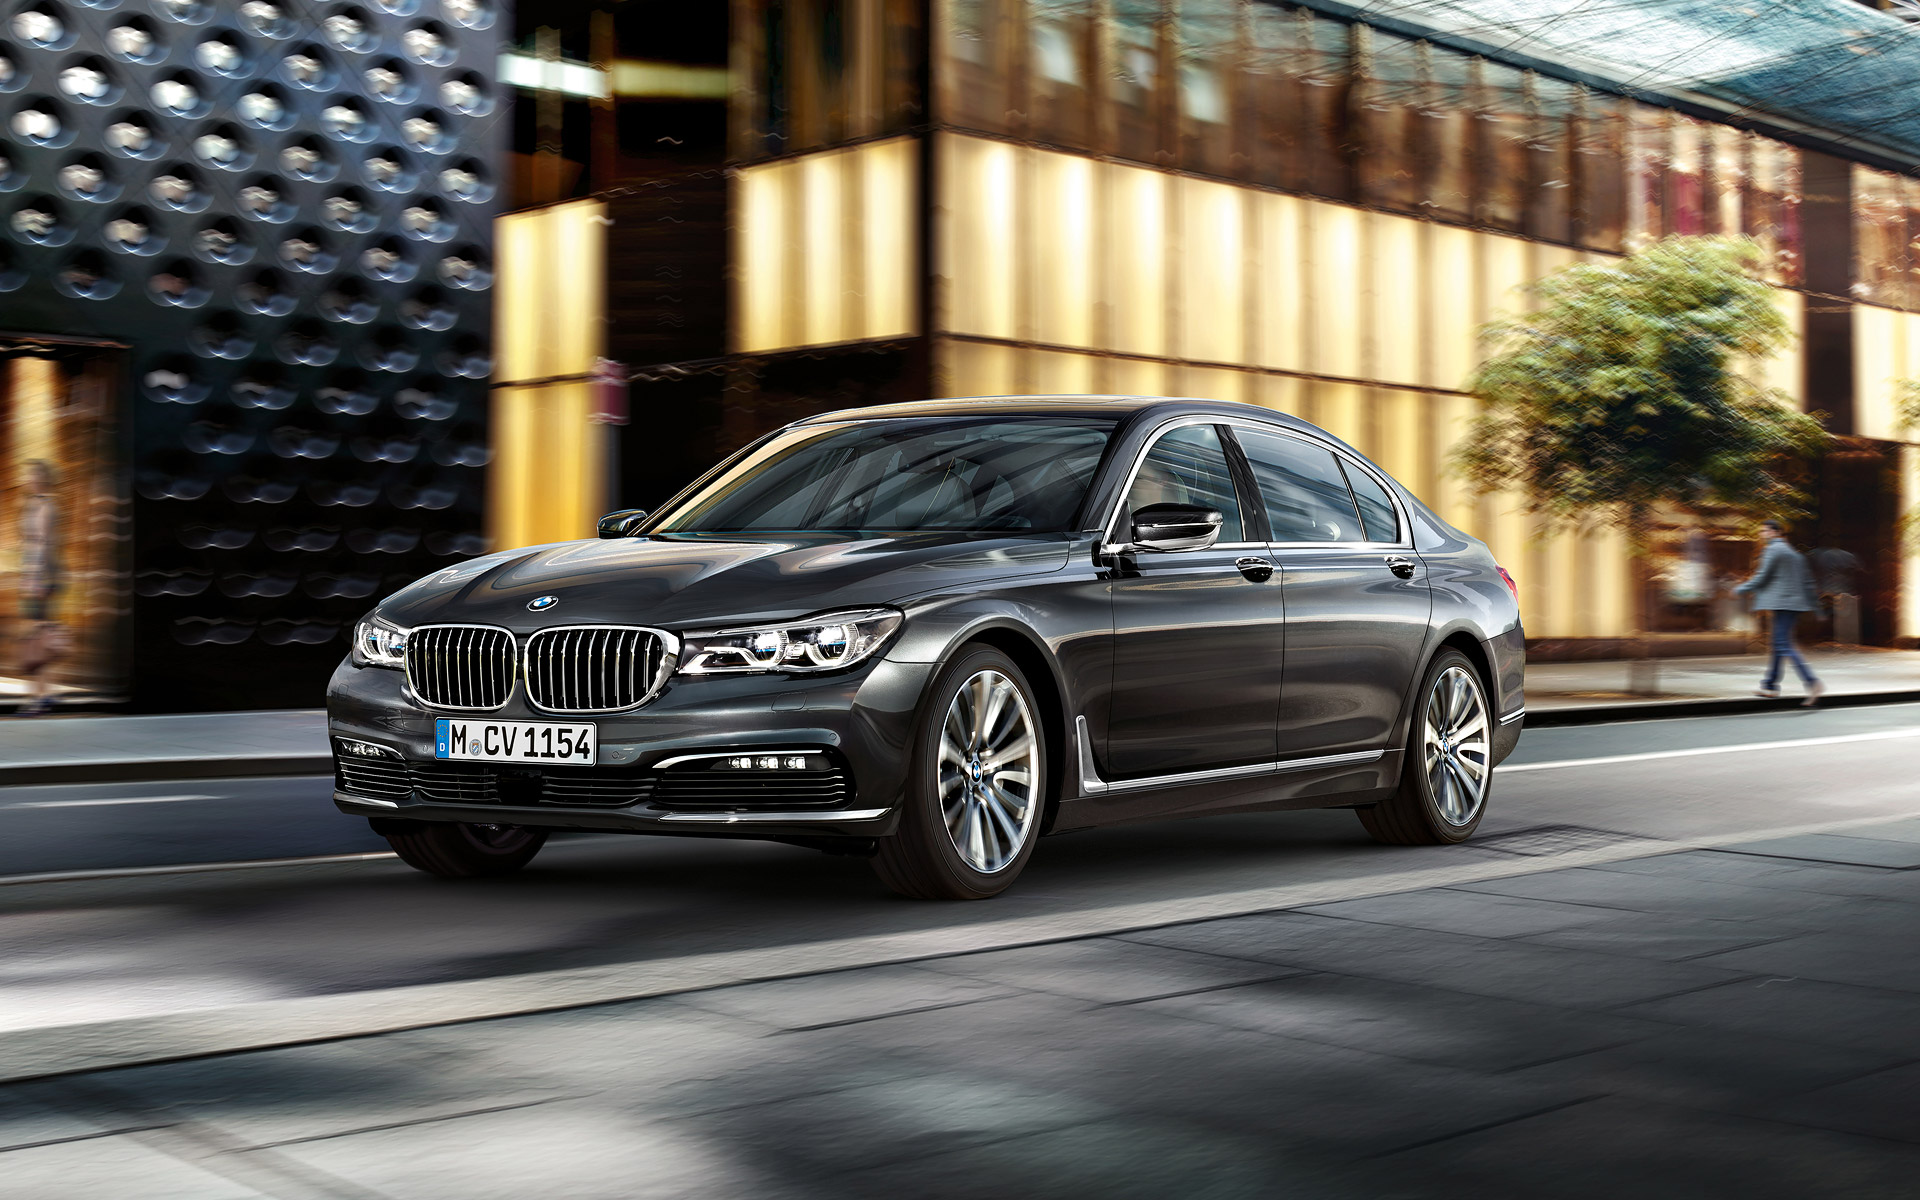 Bmw 7 Series Gallery Vista Bmw Pompano Beach